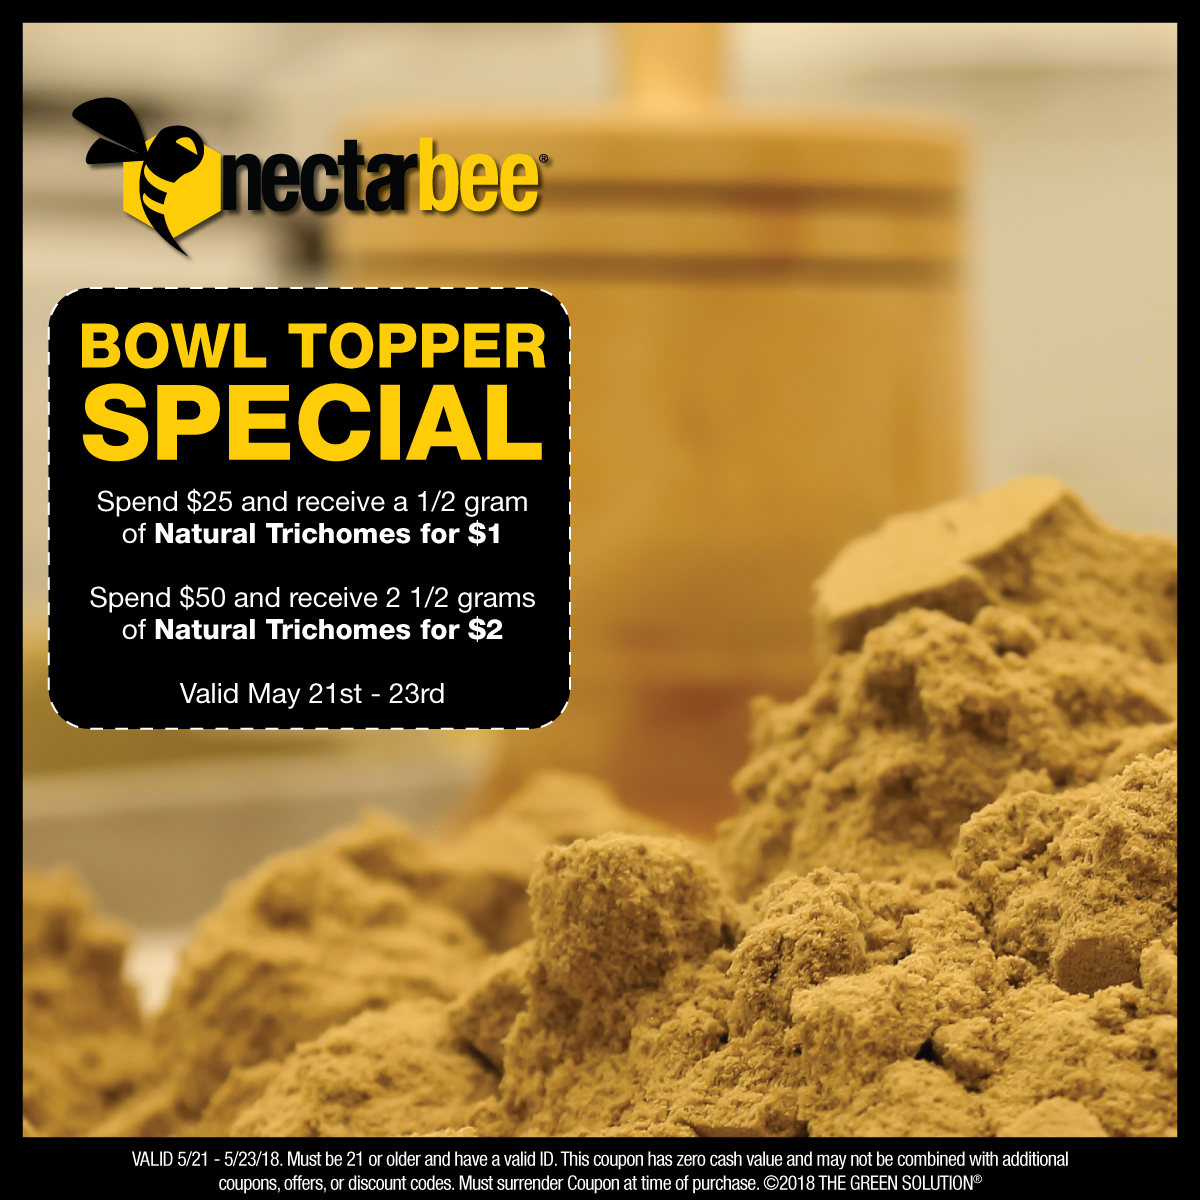 Bowl Topper Special - May 21-23